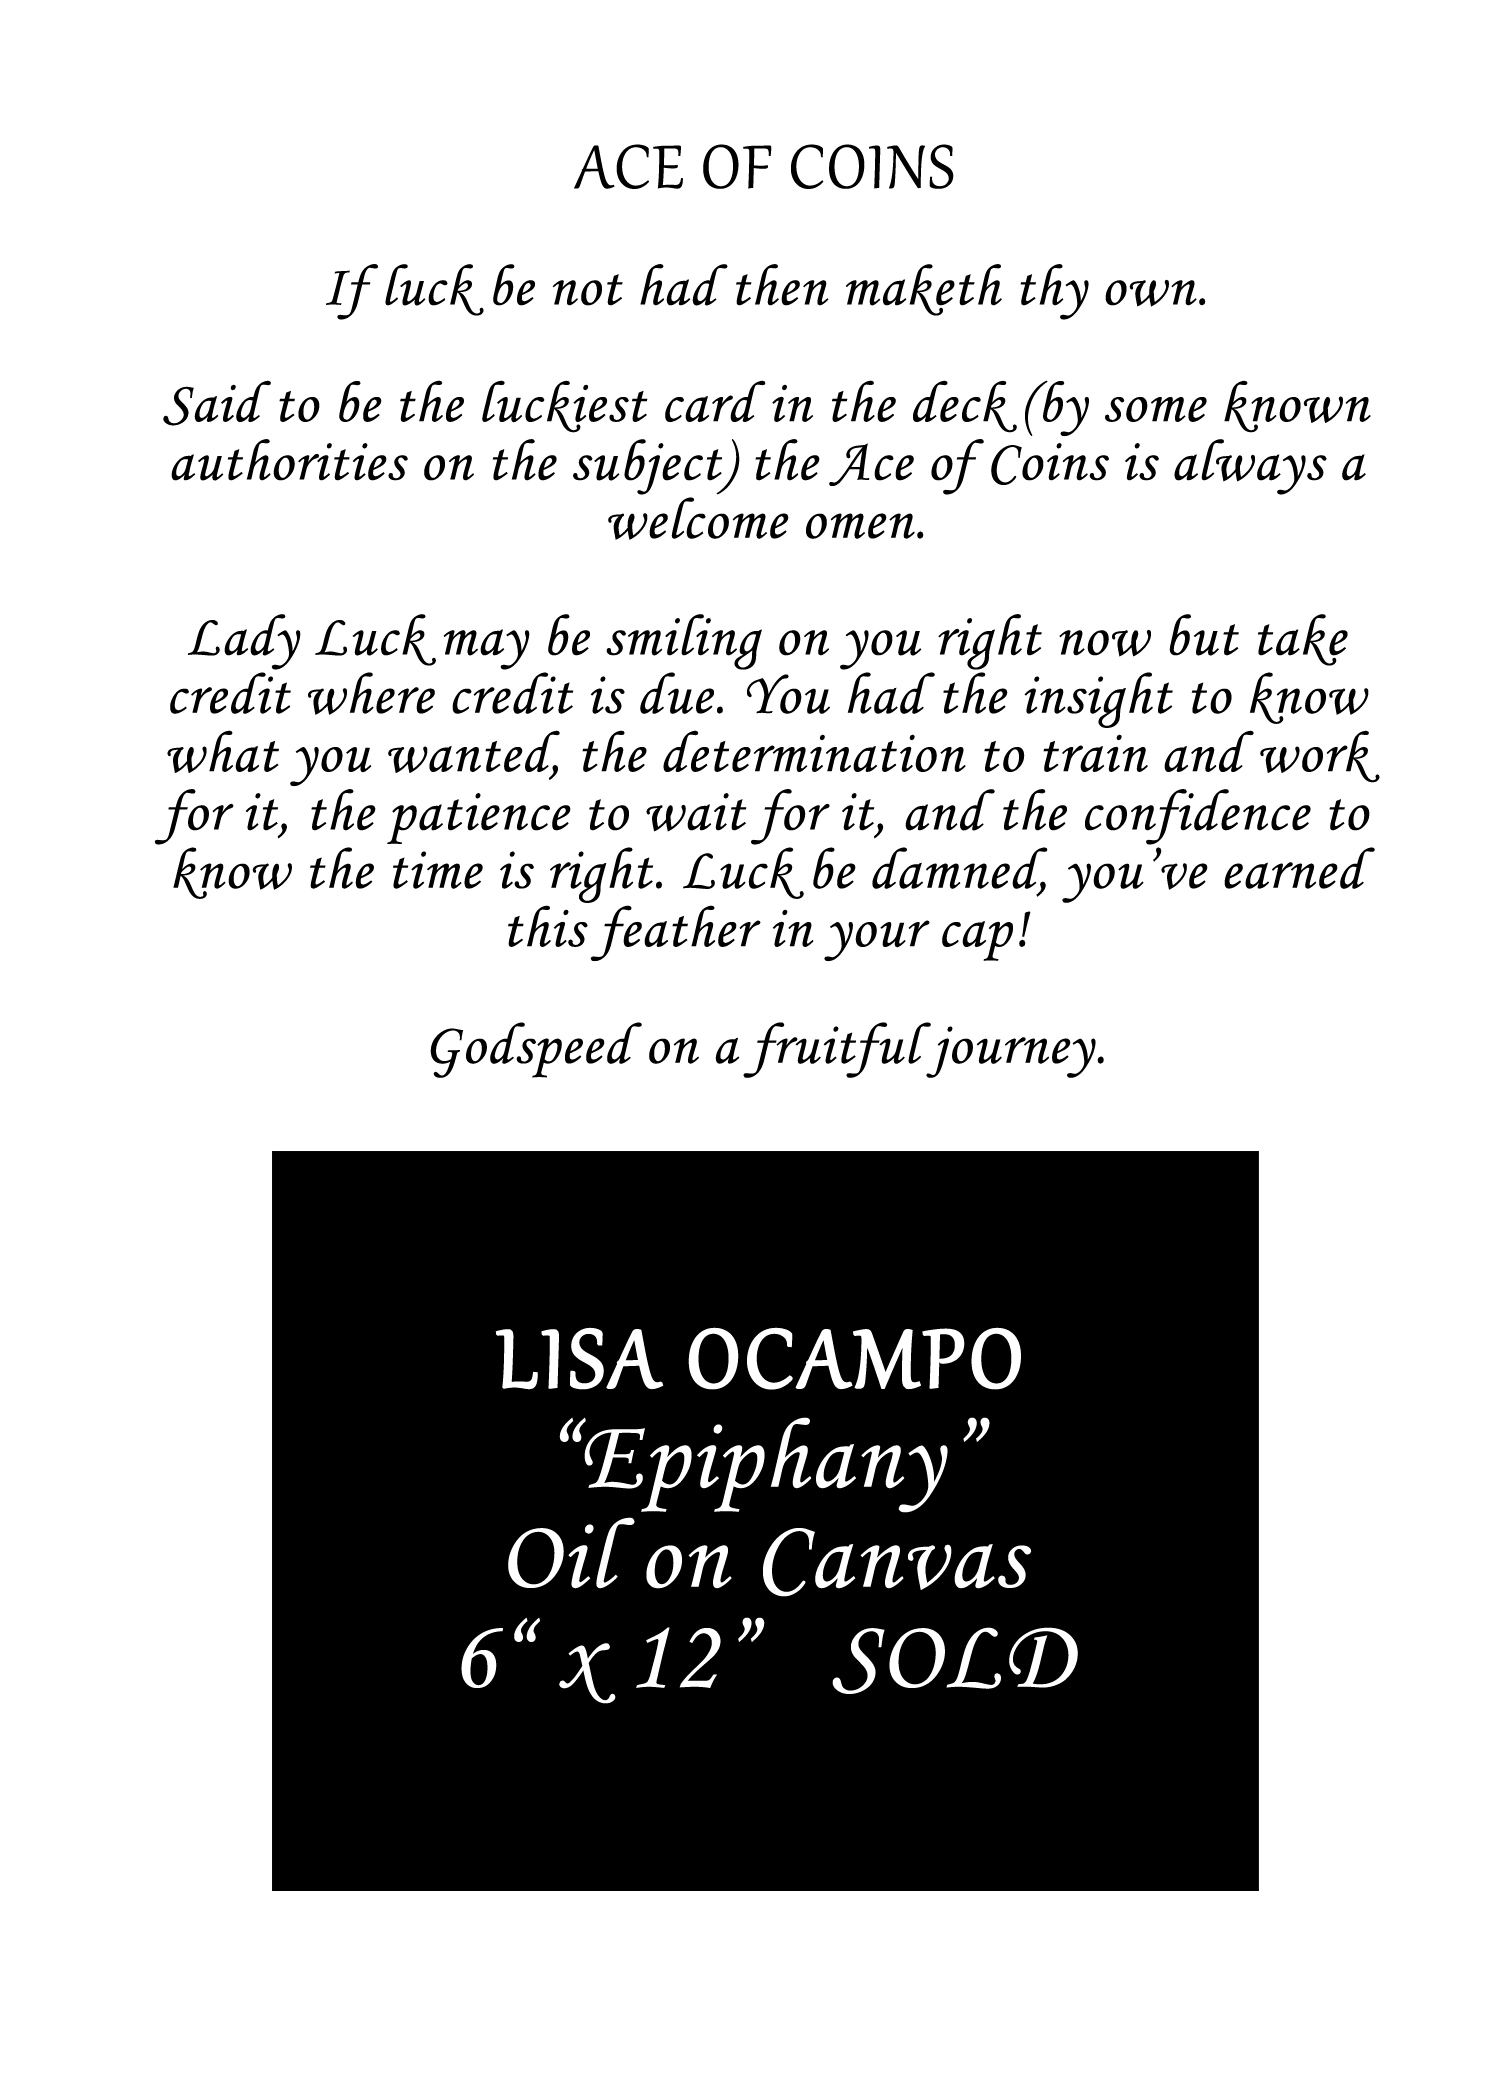 Lisa-Ocampo-Epiphany-Ace-Of-Coins-10.jpg